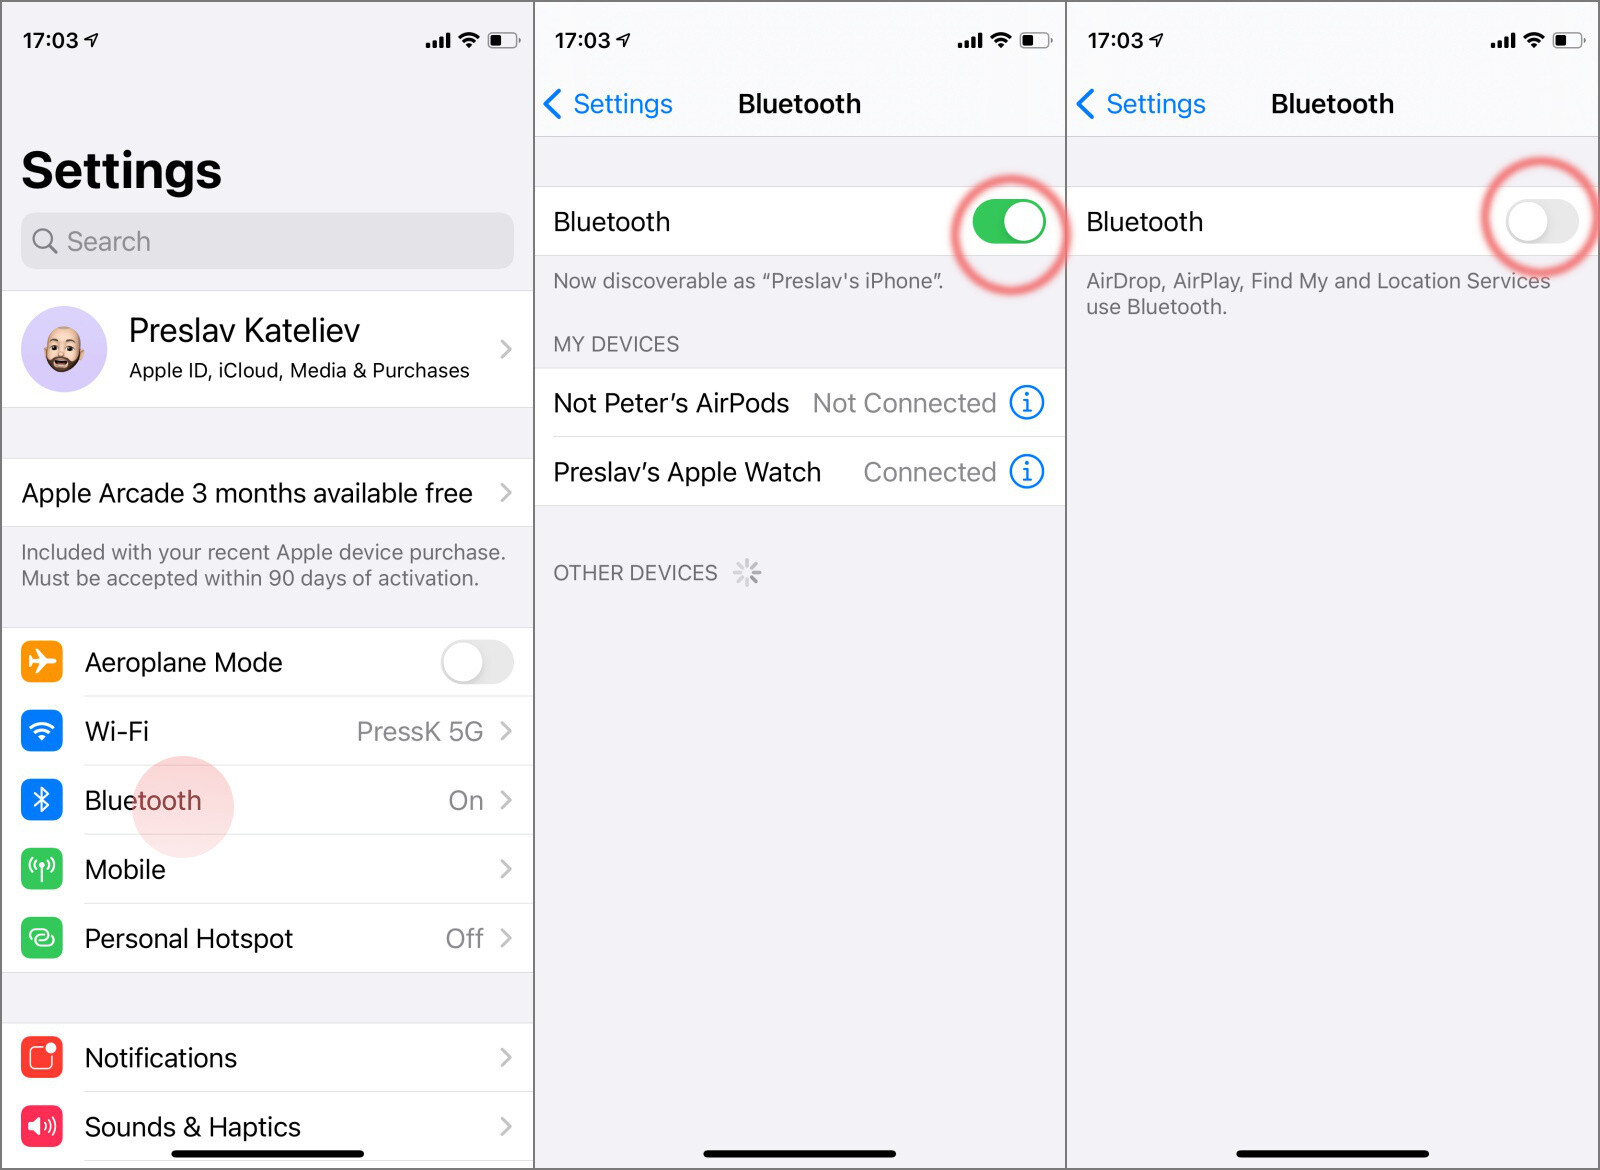 How to save battery on iPhone 12 mini, iPhone 12, iPhone 12 Pro, iPhone 12 Pro Max